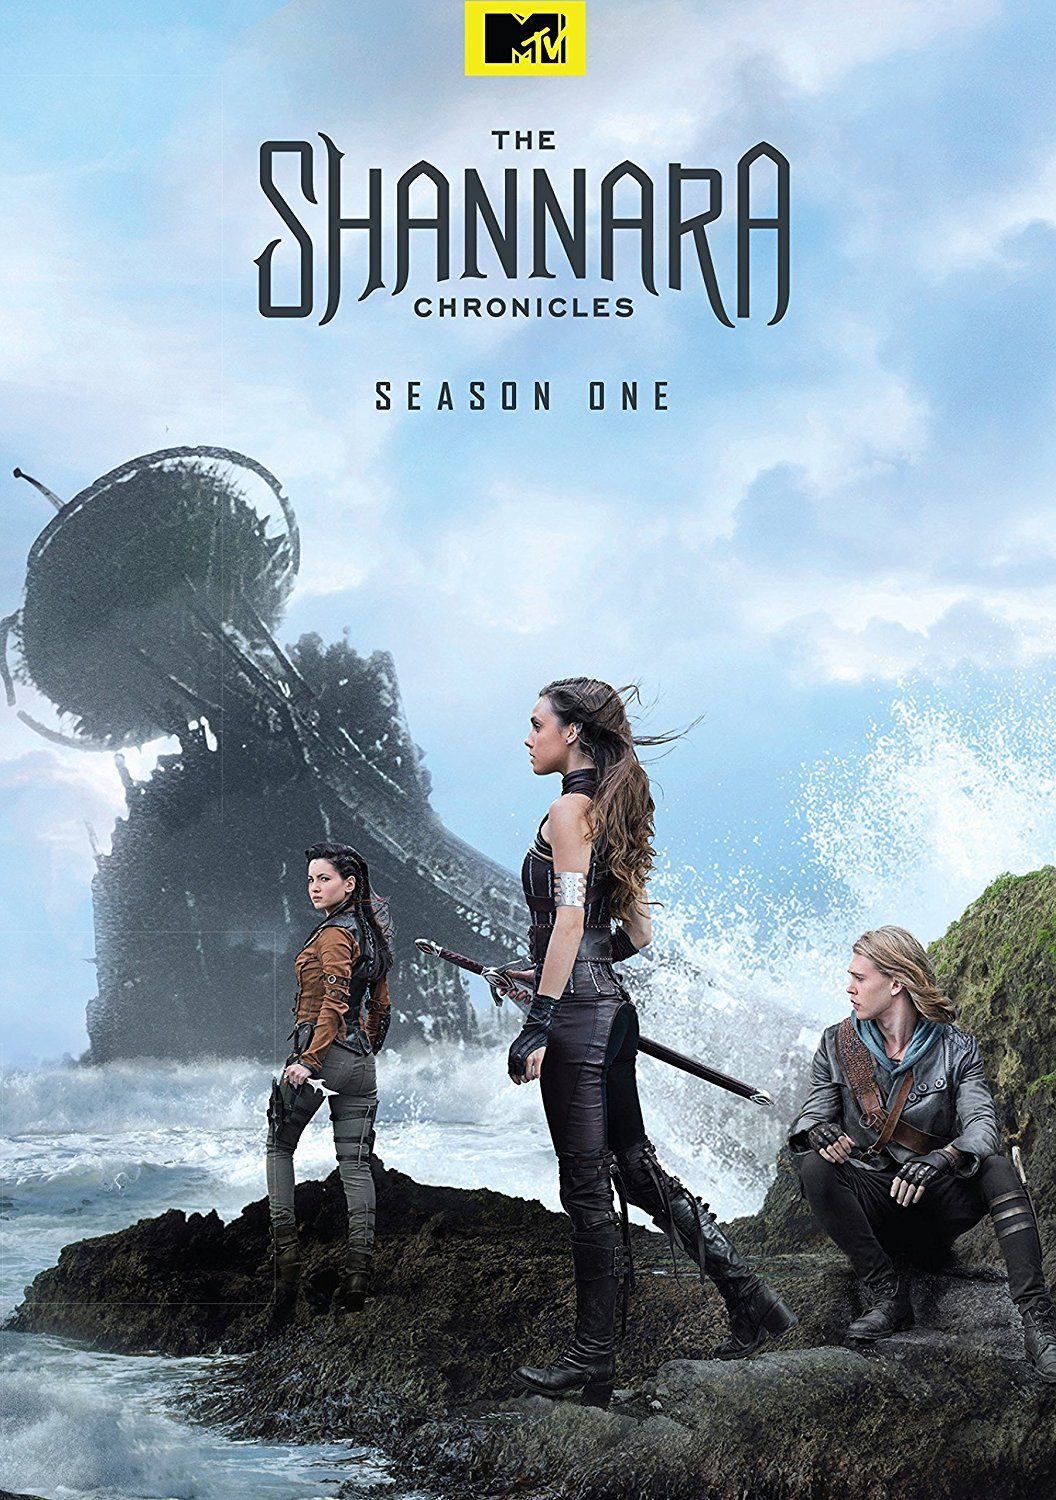 The Shannara Chronicles - Season 02